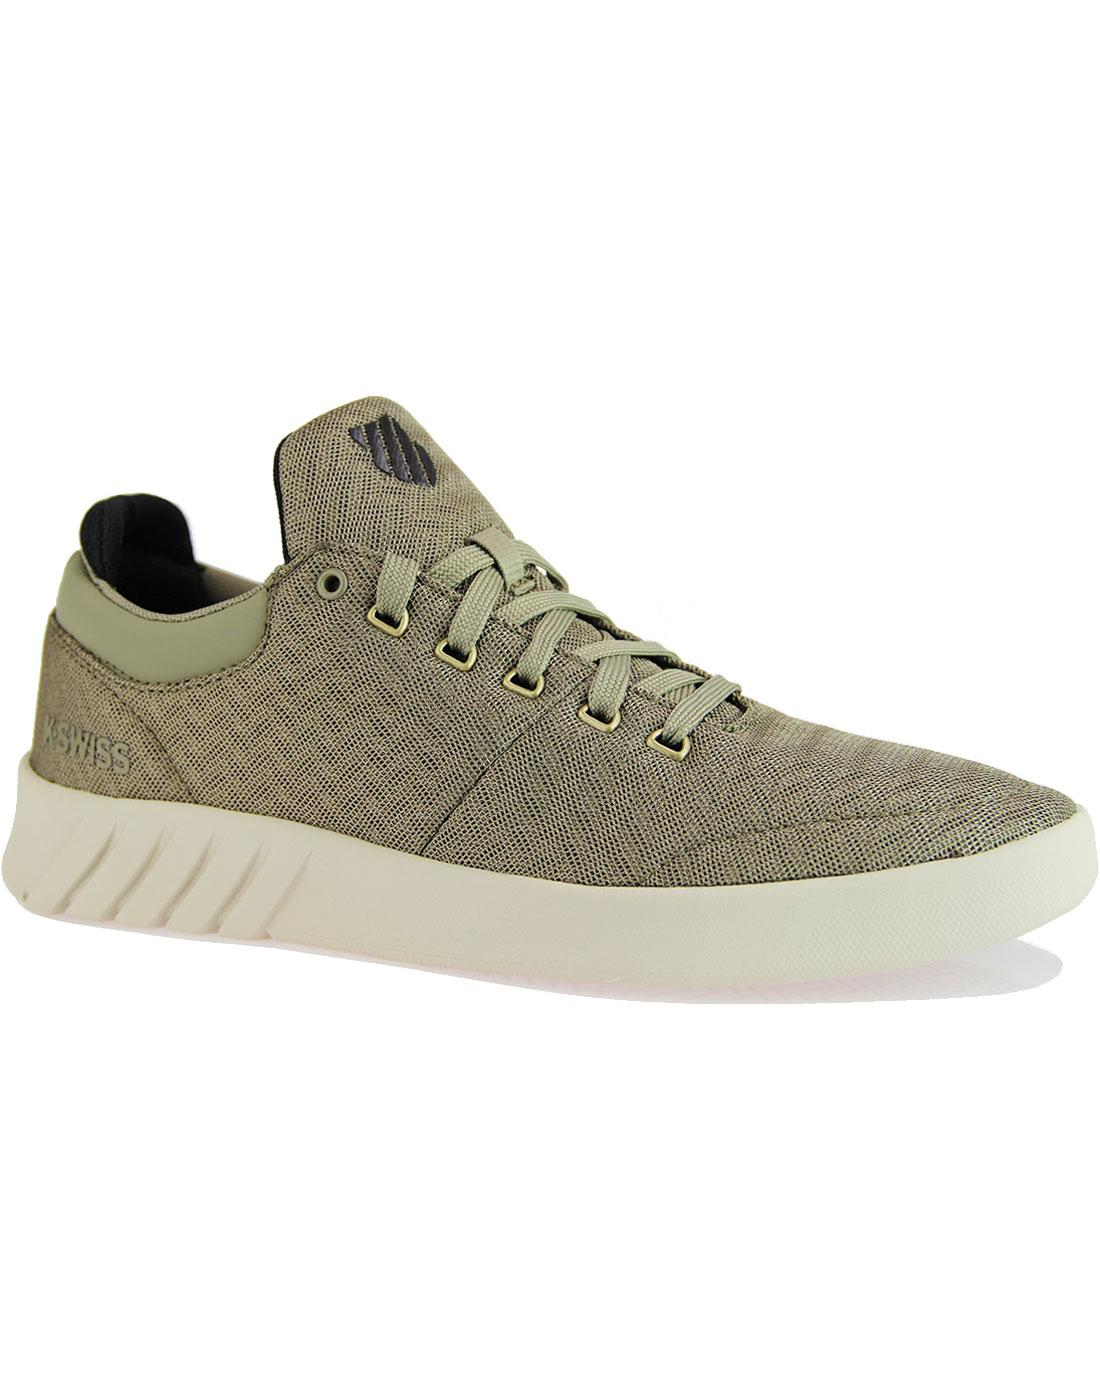 Aero K SWISS Knitted Upper Trainers GREEN